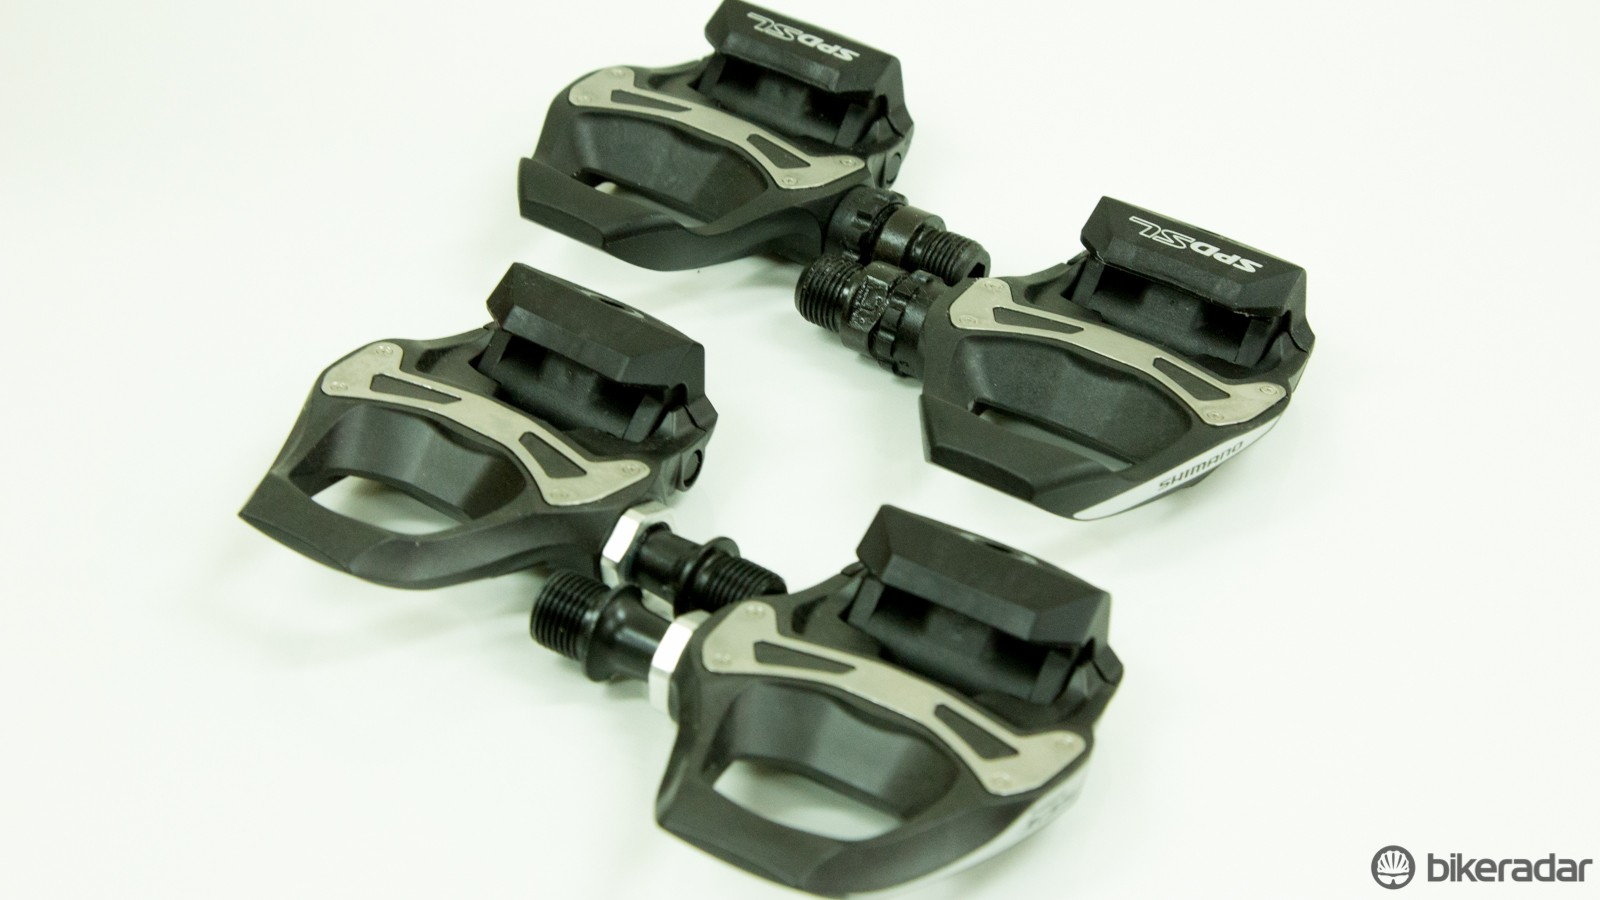 eba1cb92d1f The Shimano R550 SPD-SL pedals (back) are heavier, made of a